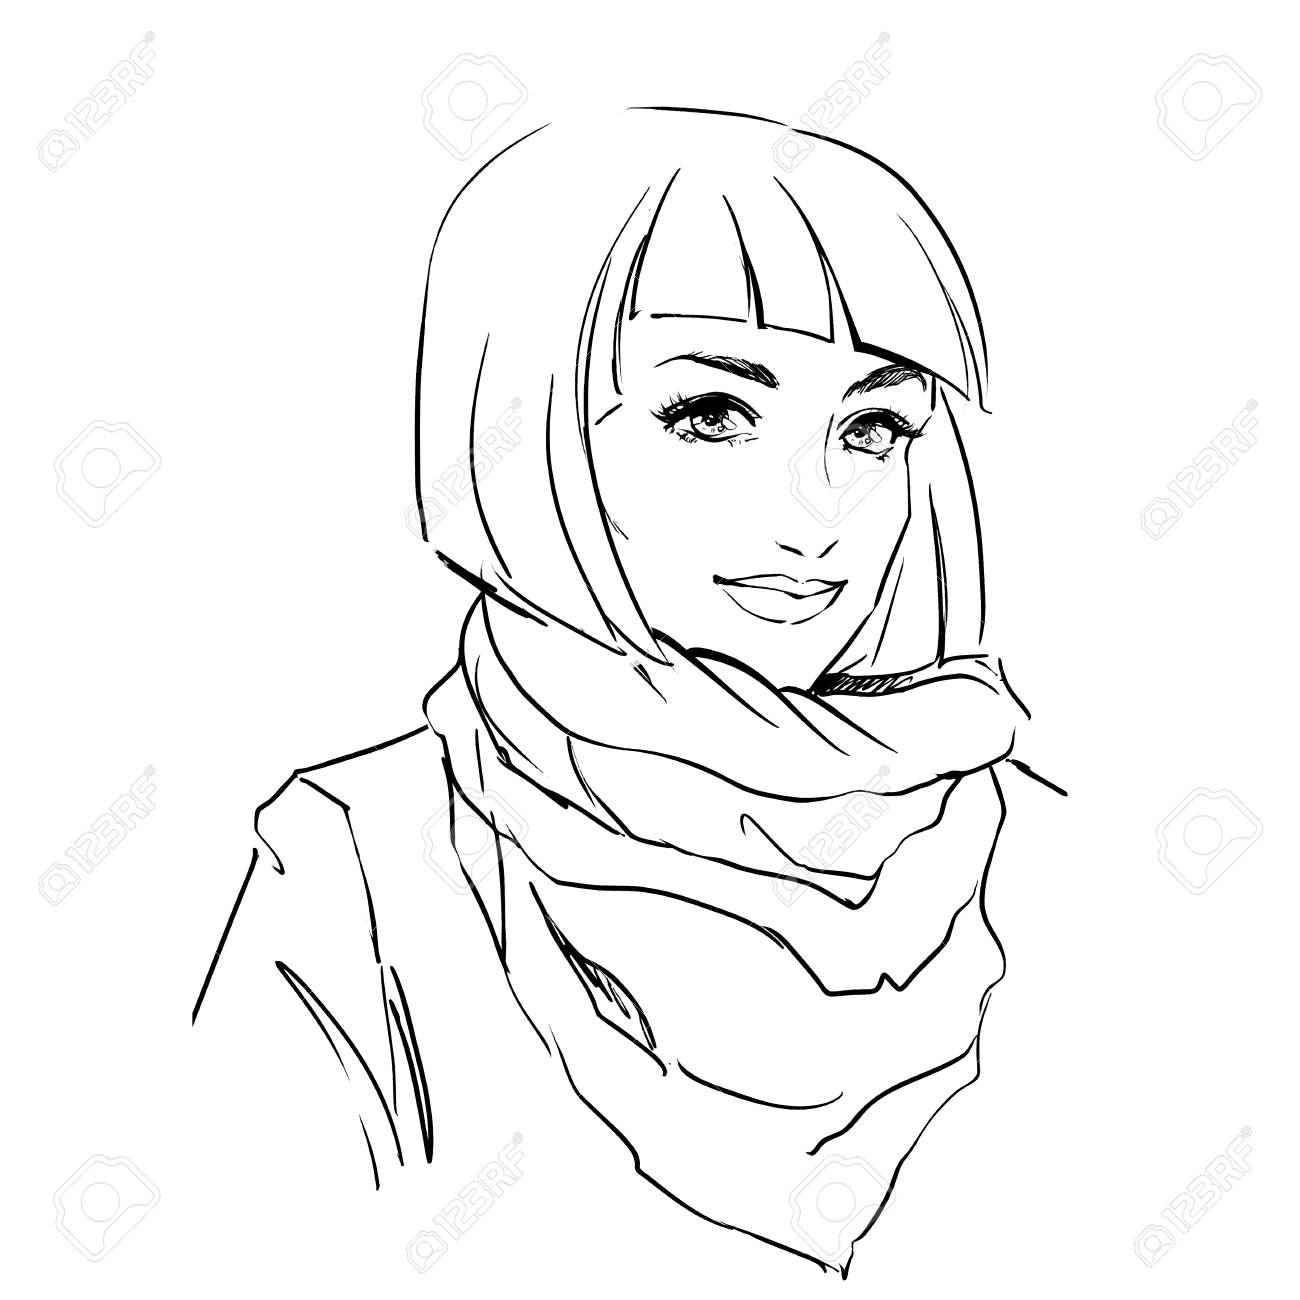 6a208a6e960 Fashionable stylish woman in winter clothes. She is wearing warm parka and  big scarf on